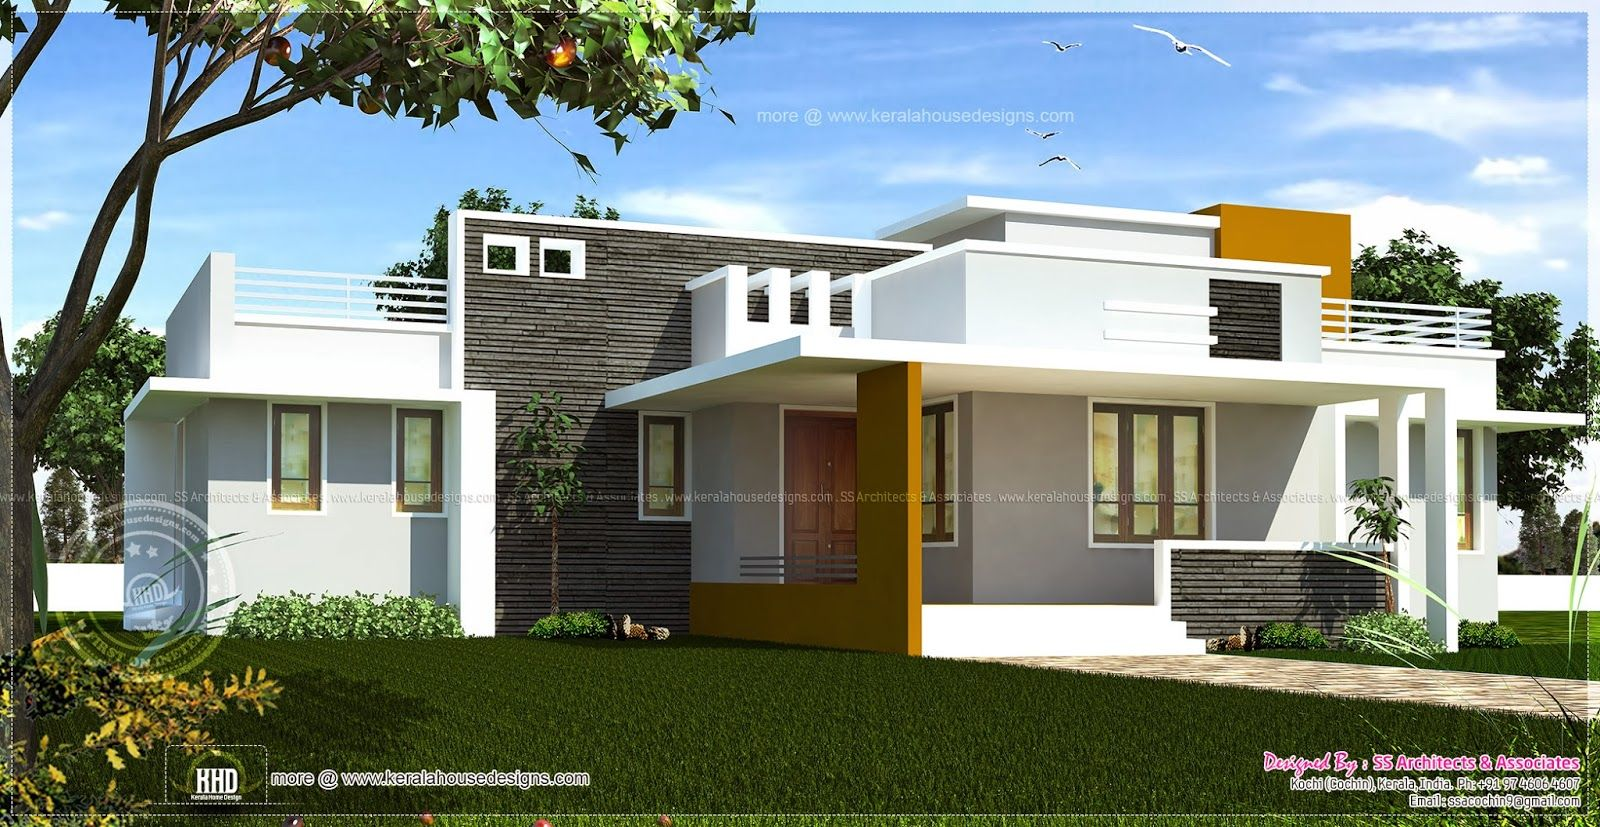 Excellent single home designs single floor contemporary for New style home design